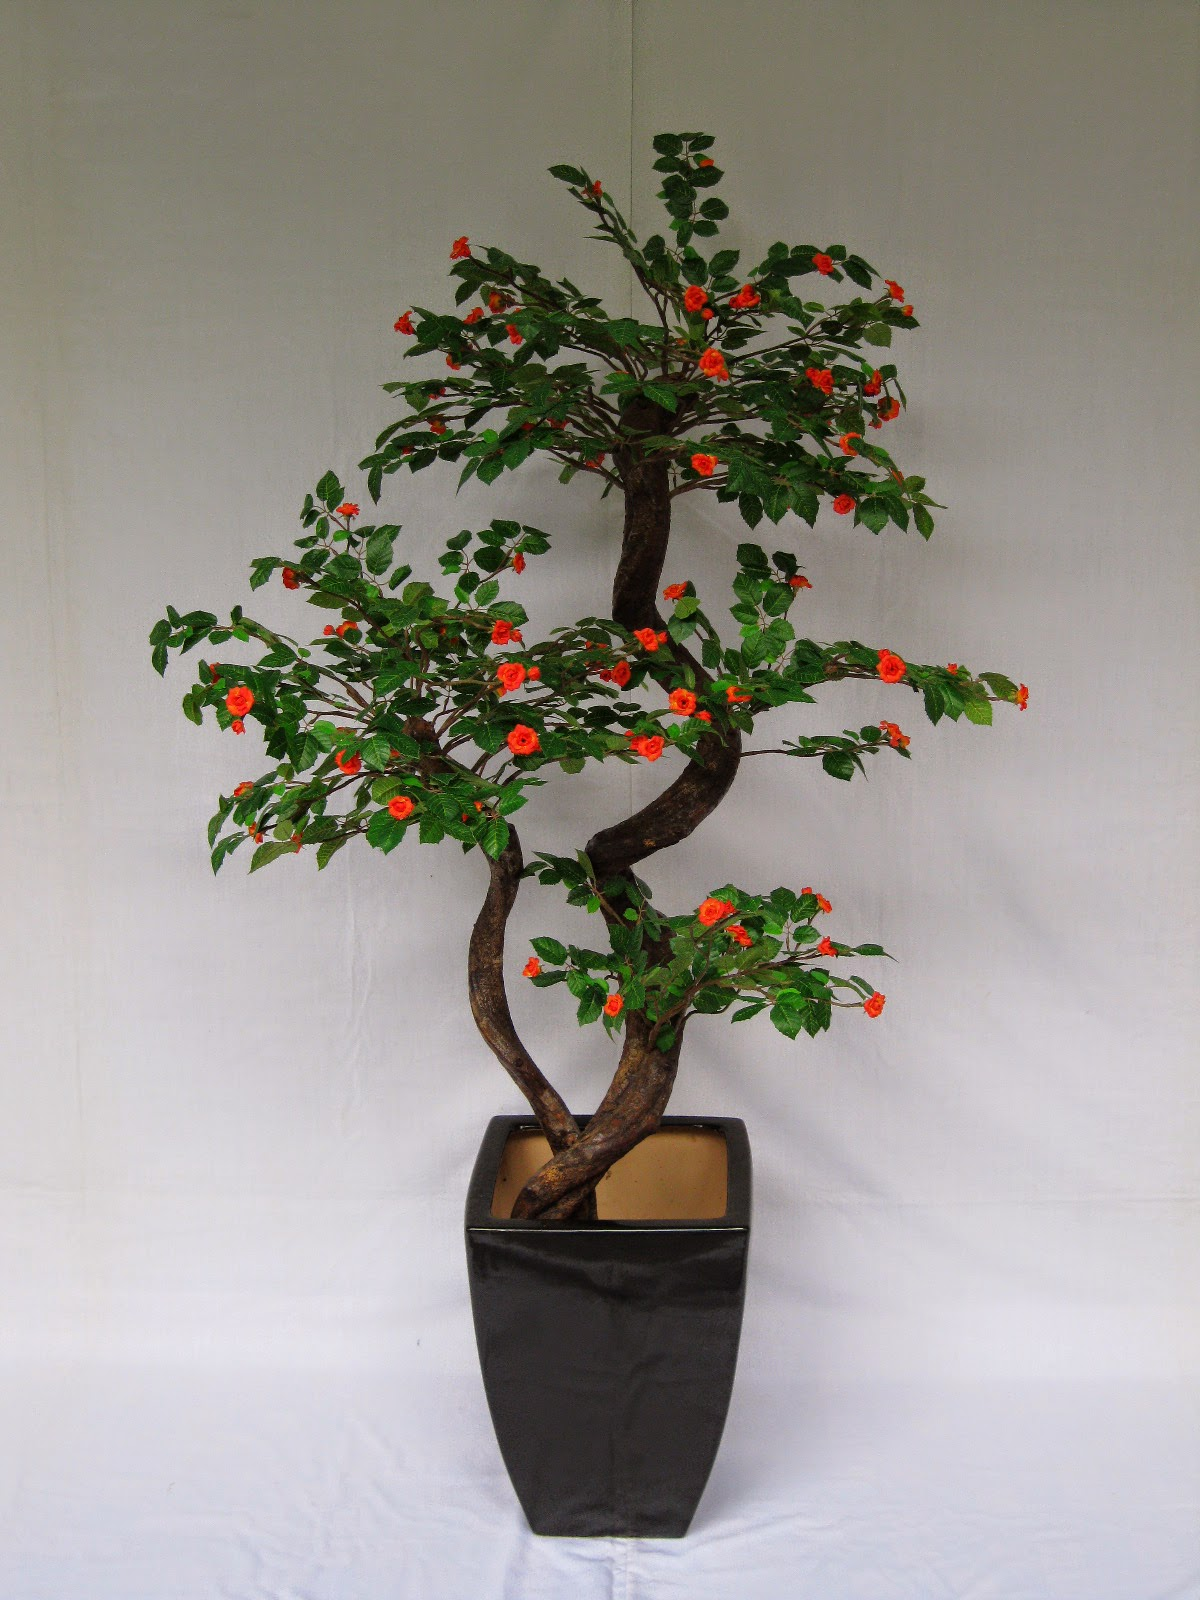 Hoi Kee Flower Shop 5ft New Bonsai Mini RoseO Tree